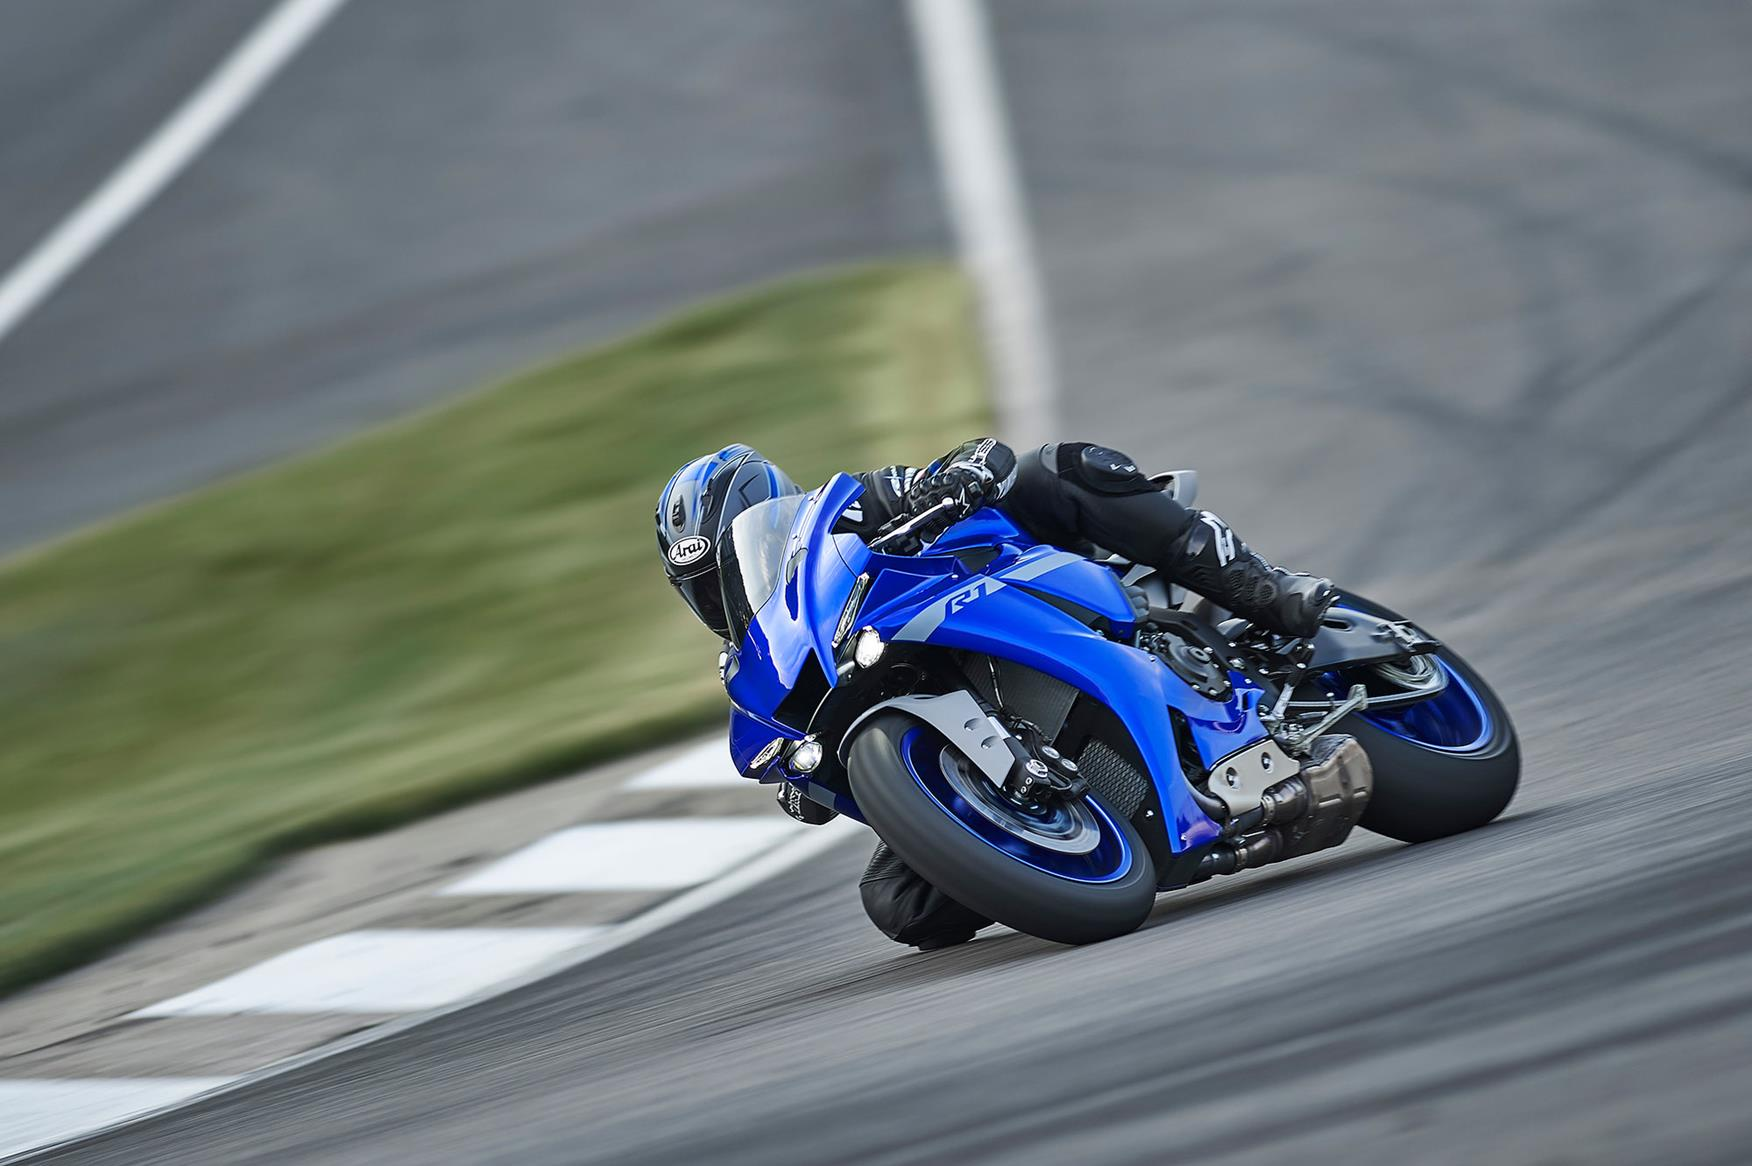 2020 Yamaha R1 on track